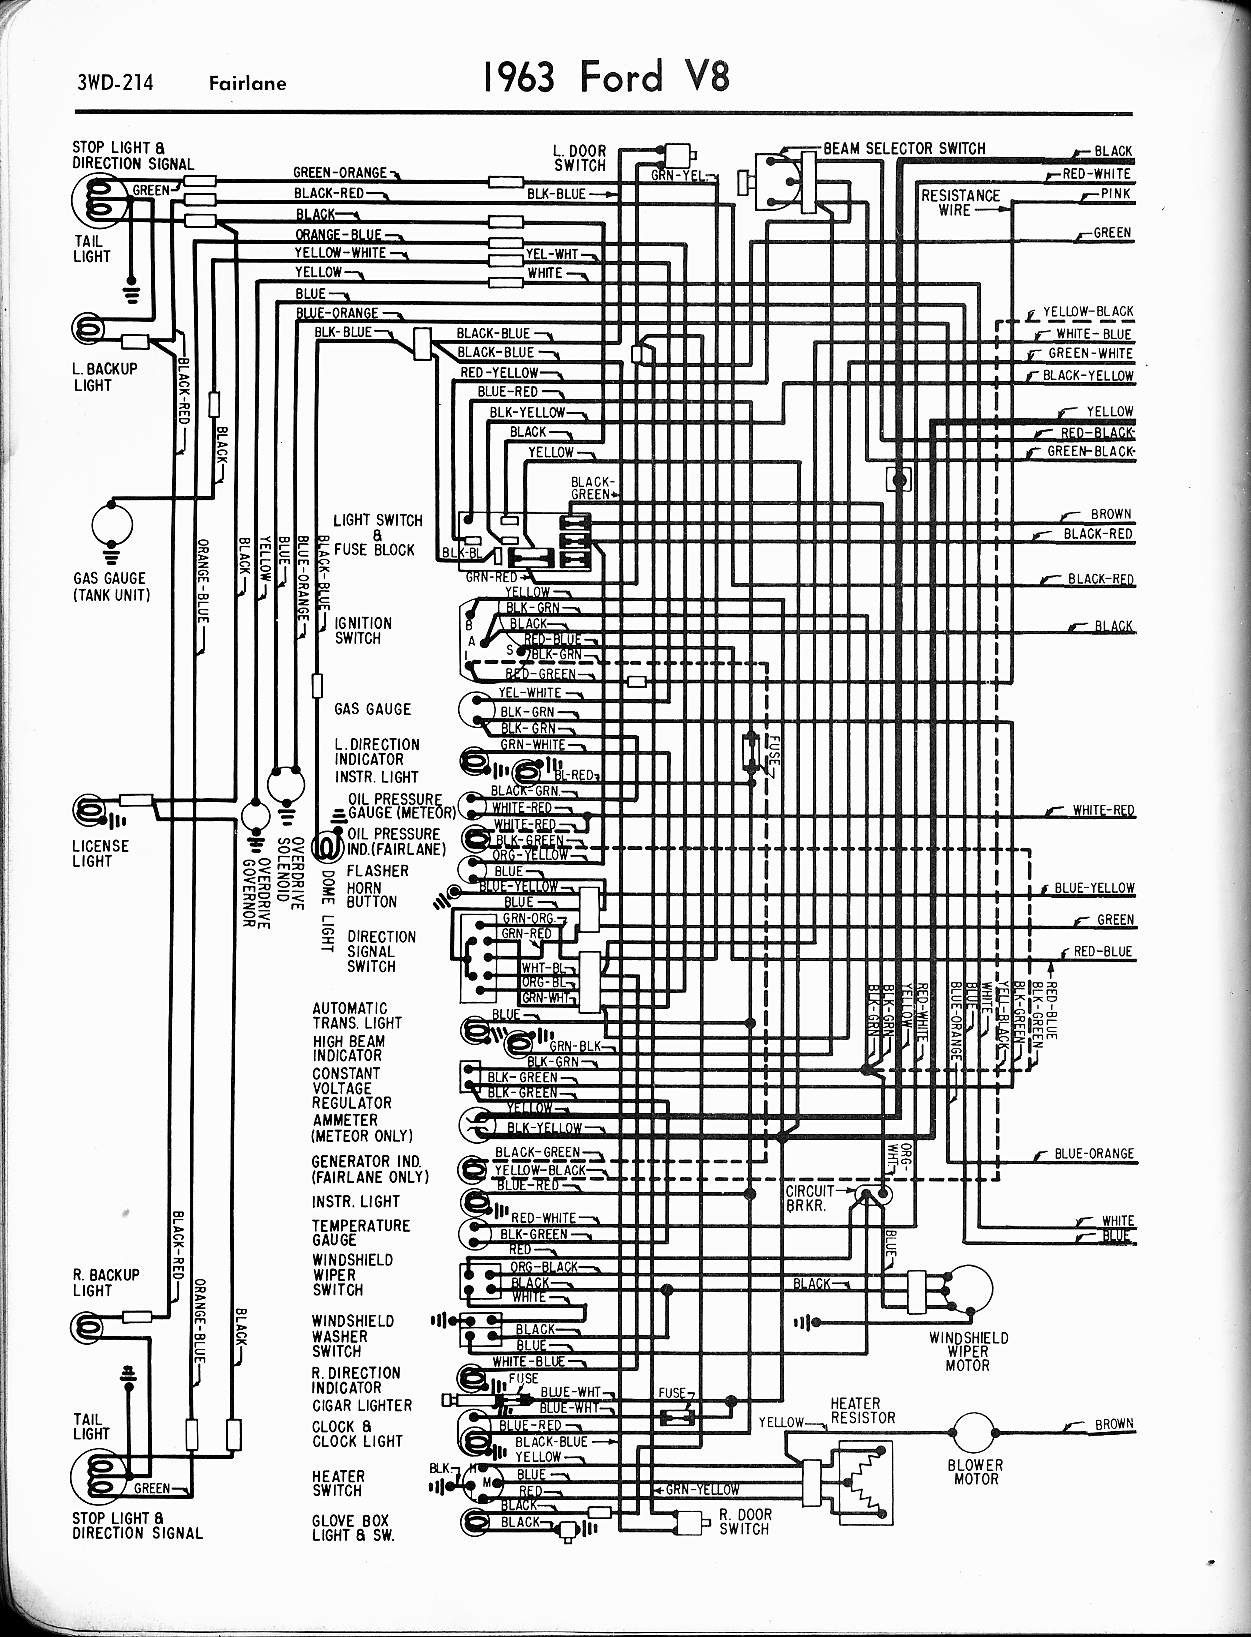 MWire5765 214 57 65 ford wiring diagrams 1962 ford fairlane wiring diagram at reclaimingppi.co